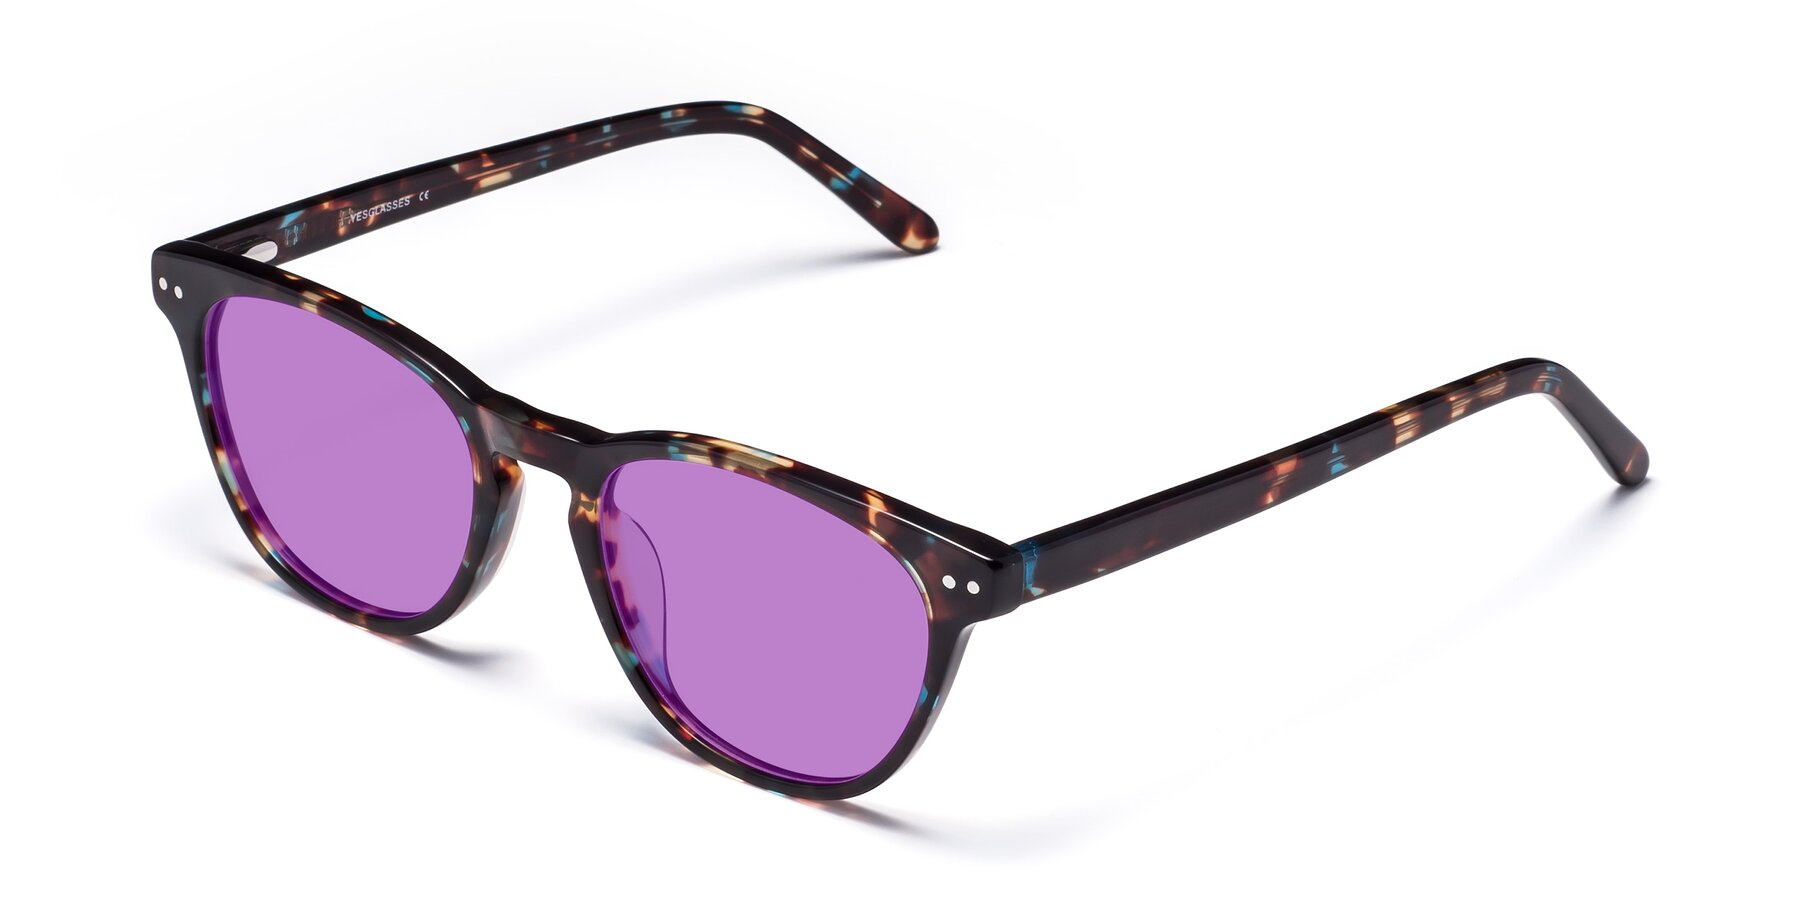 Angle of Blaze in Tortoise-Blue with Medium Purple Tinted Lenses